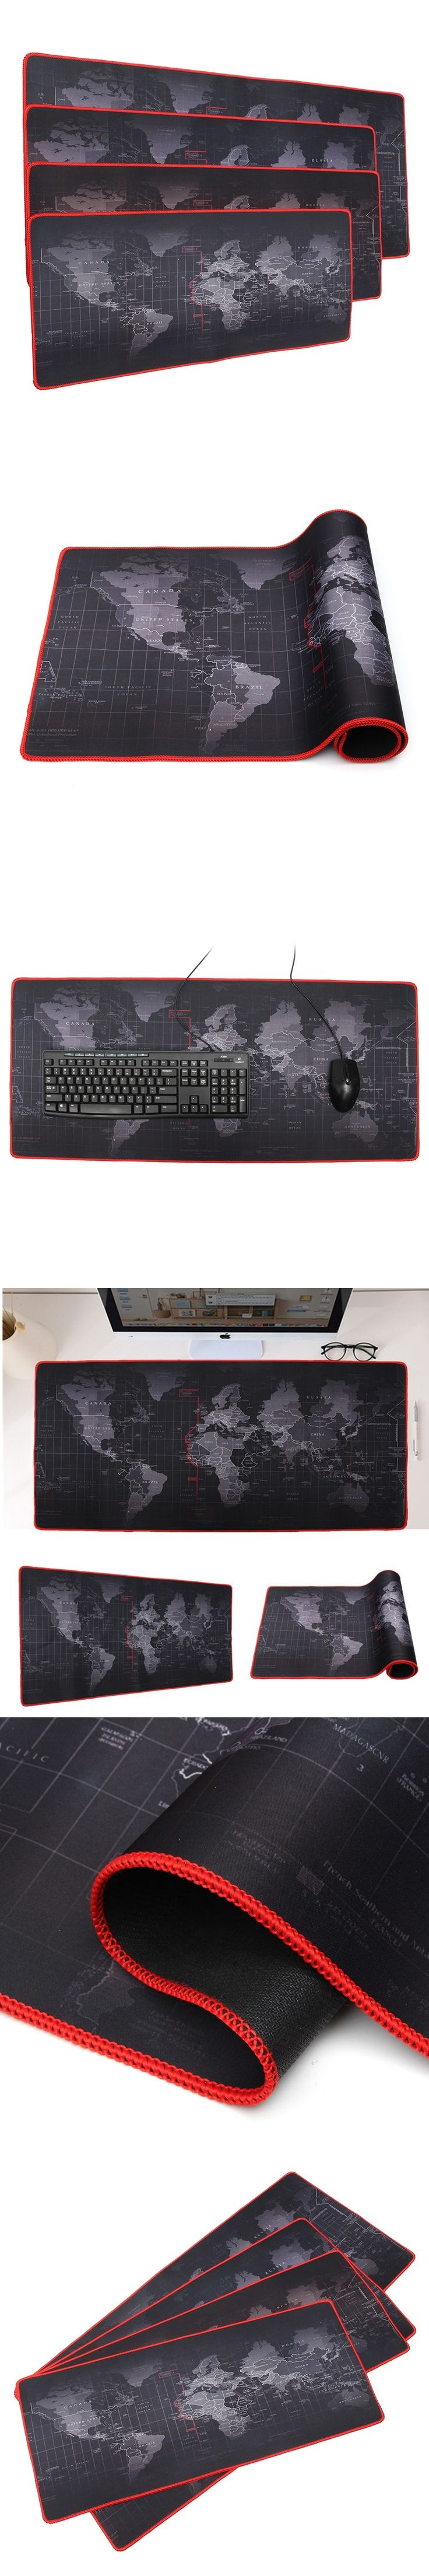 600x300/700x300/800x300/900x400mm World Map Locking Mouse Pad Gamer Large Size Computer Keyboard Mat Table Gaming Mousepad